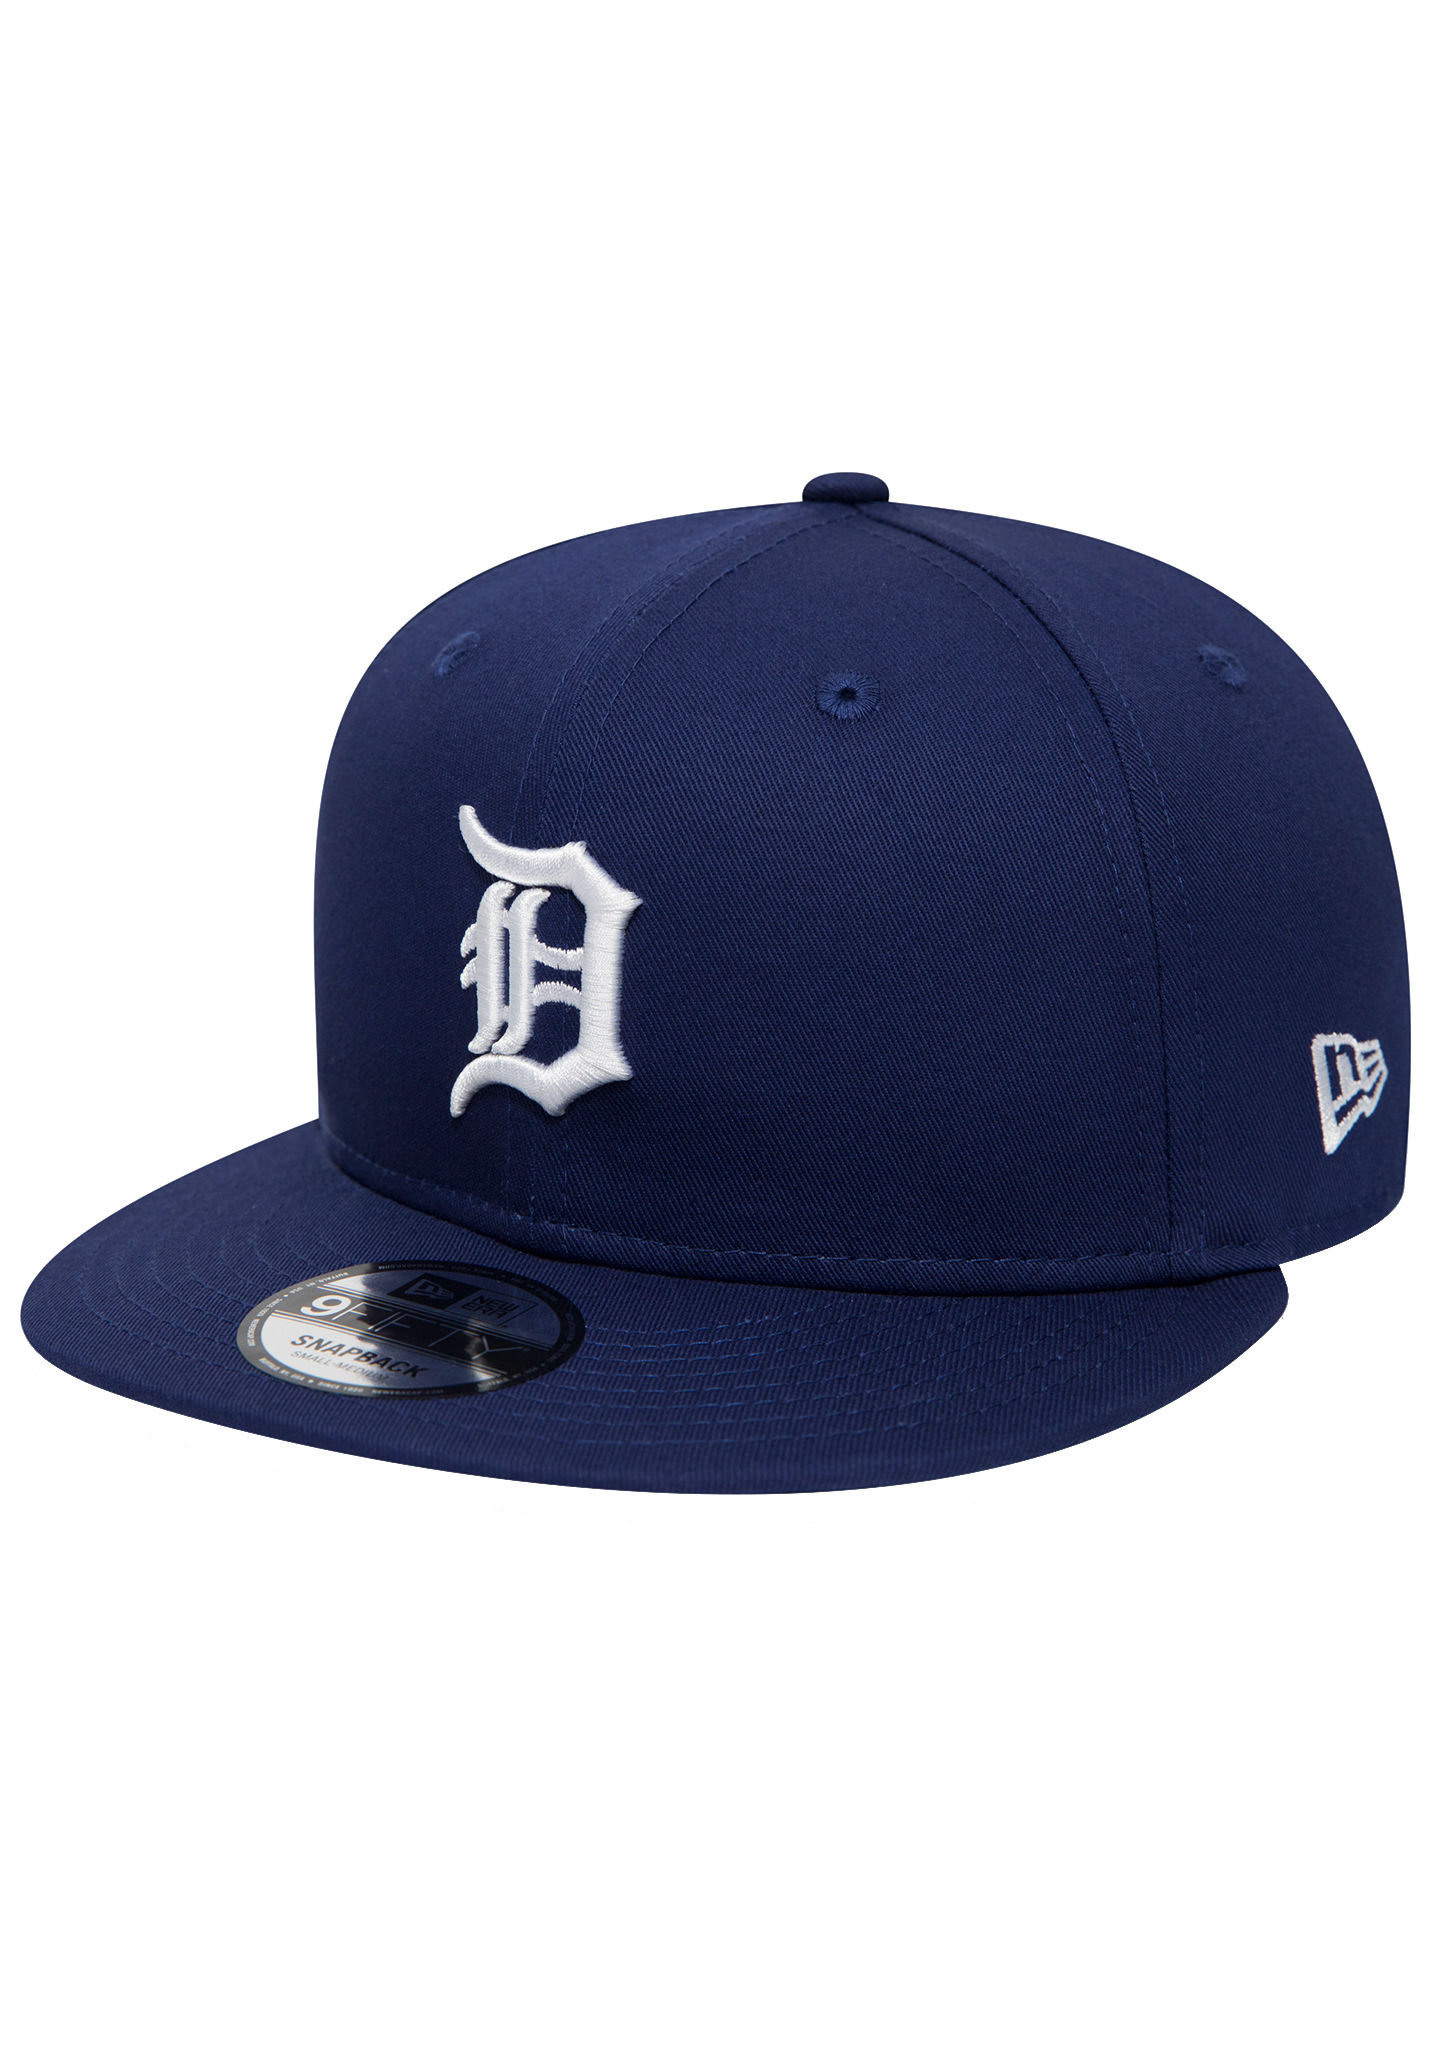 4837ee0f57bfd NEW Era 9Fifty Detroit Tigers - Strapback Cap - Blue - Planet Sports